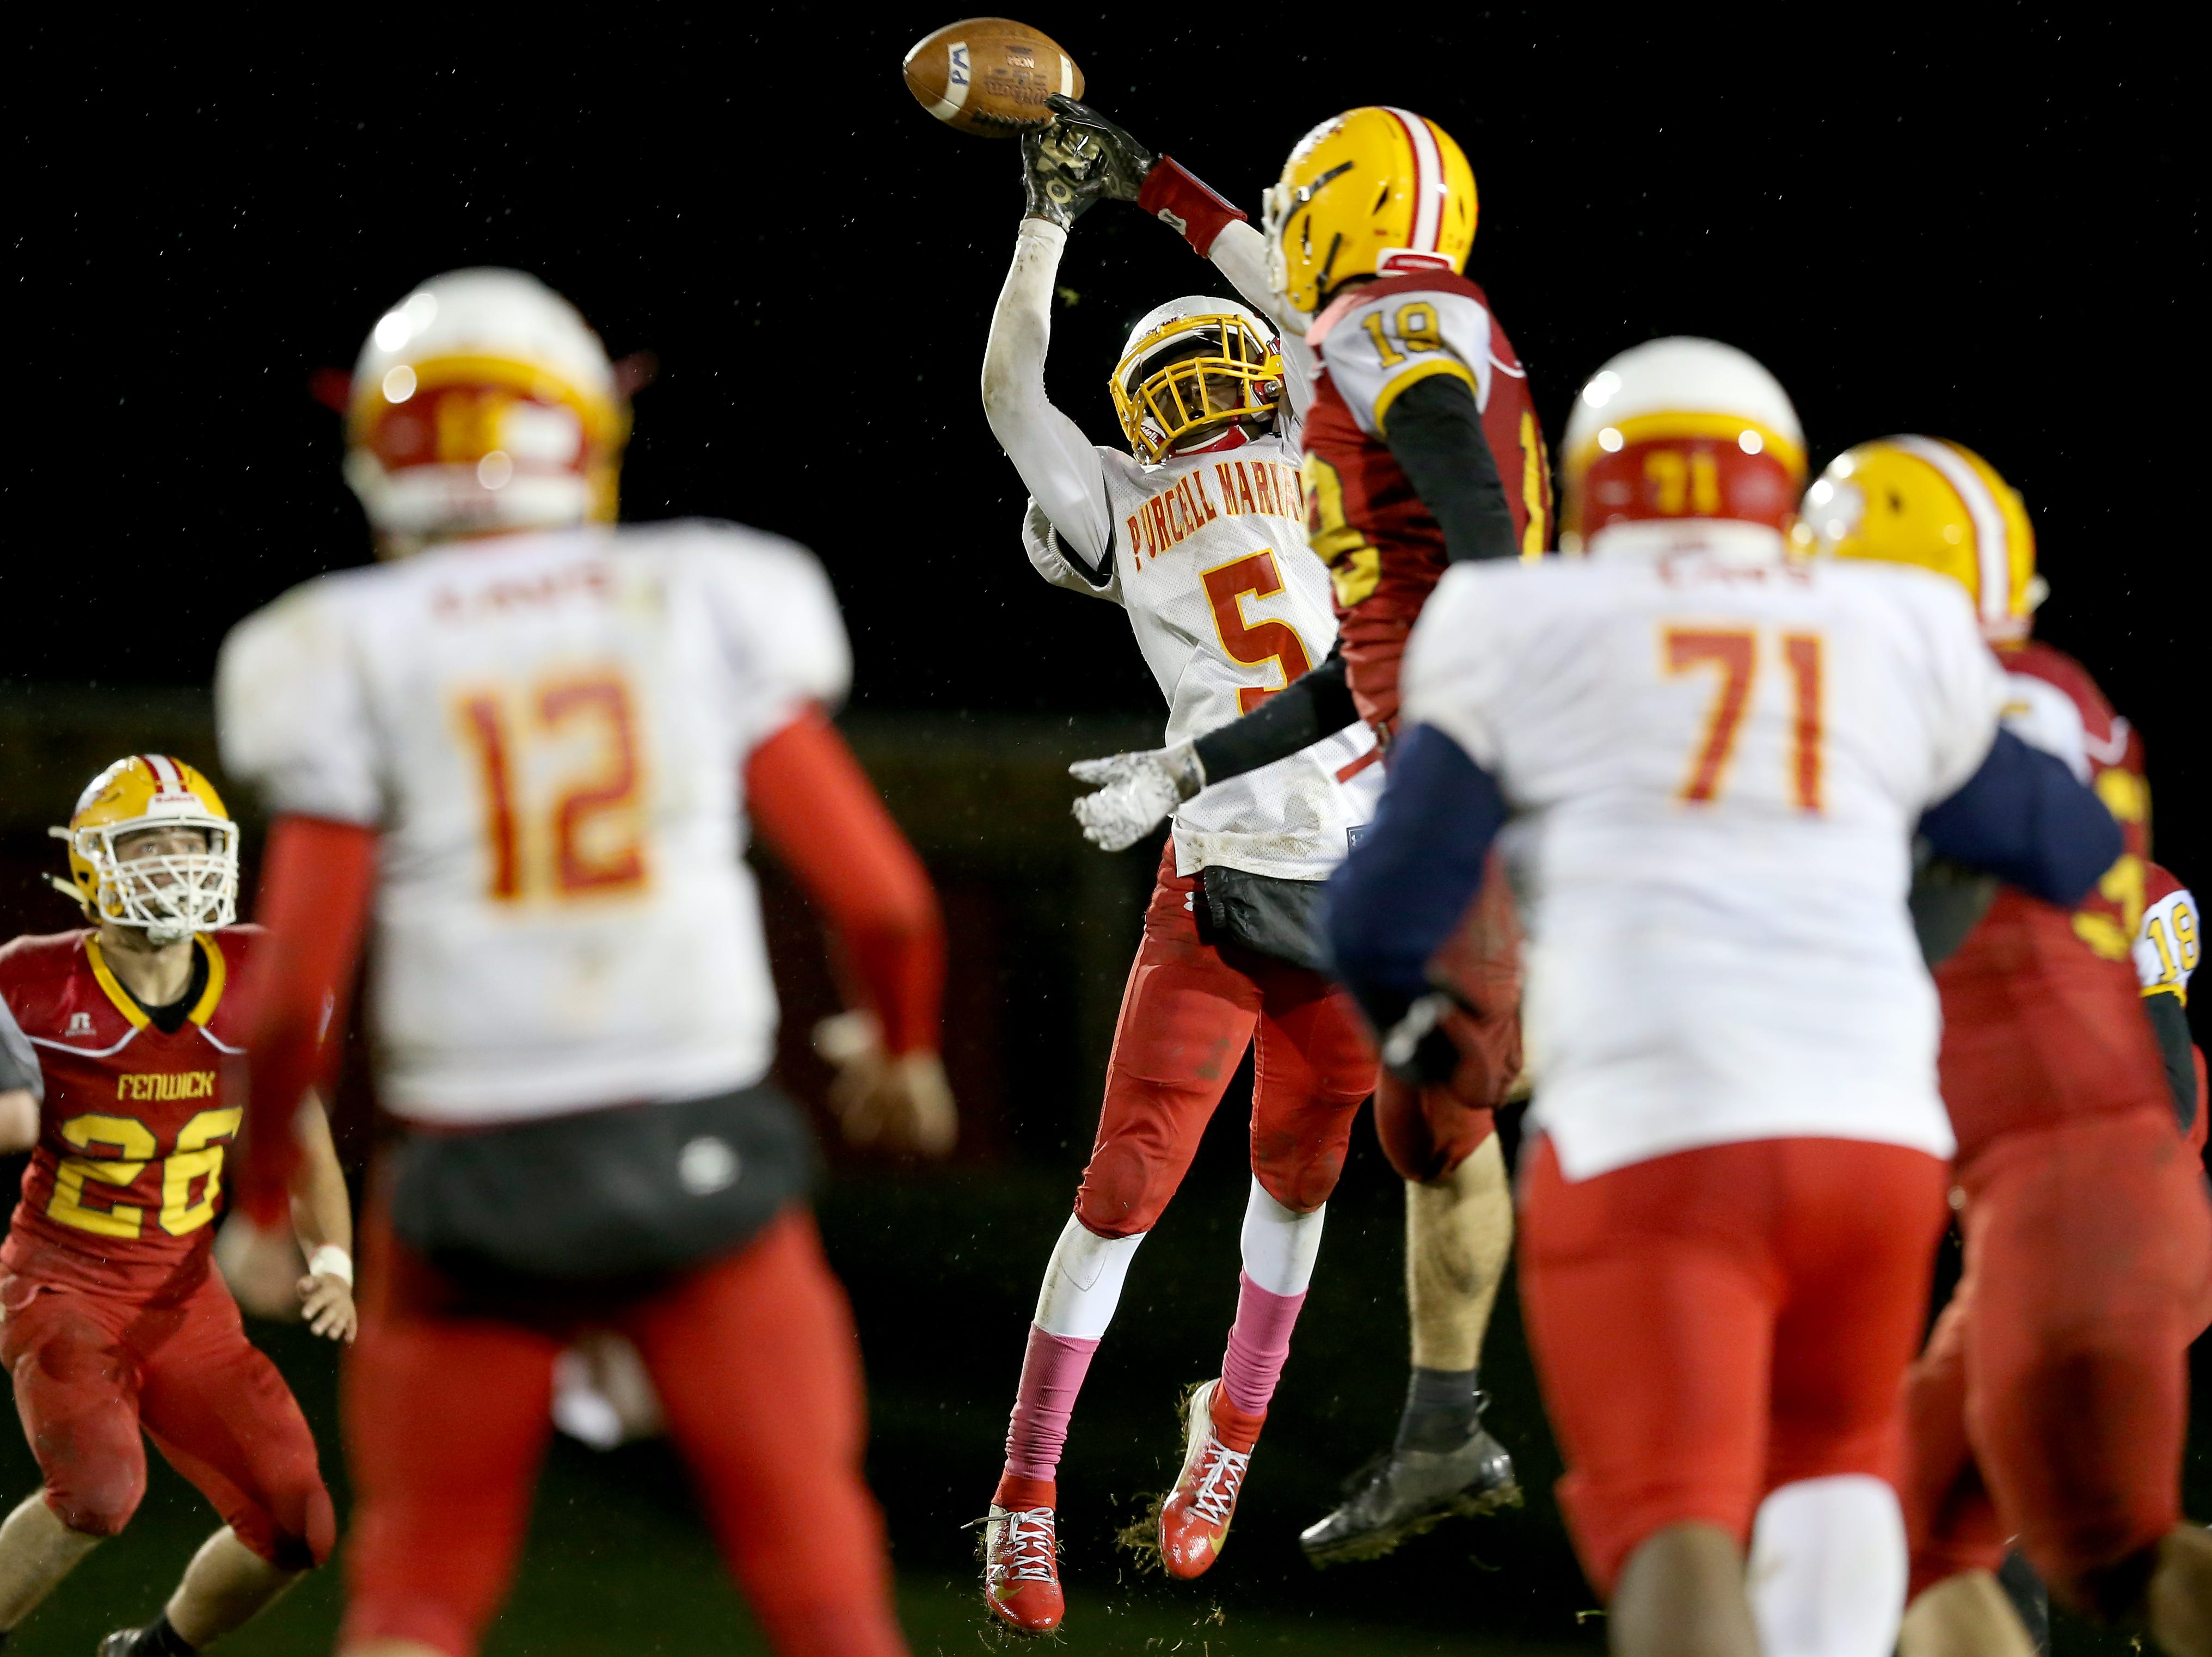 Purcell Marian wide receiver Daijon Jackson (5) leaps for a pass in the third quarter during a high school football game between Purcell Marian and Bishop Fenwick, Friday, Oct. 12, 2018, at Bishop Fenwick High School in Middletown, Ohio.